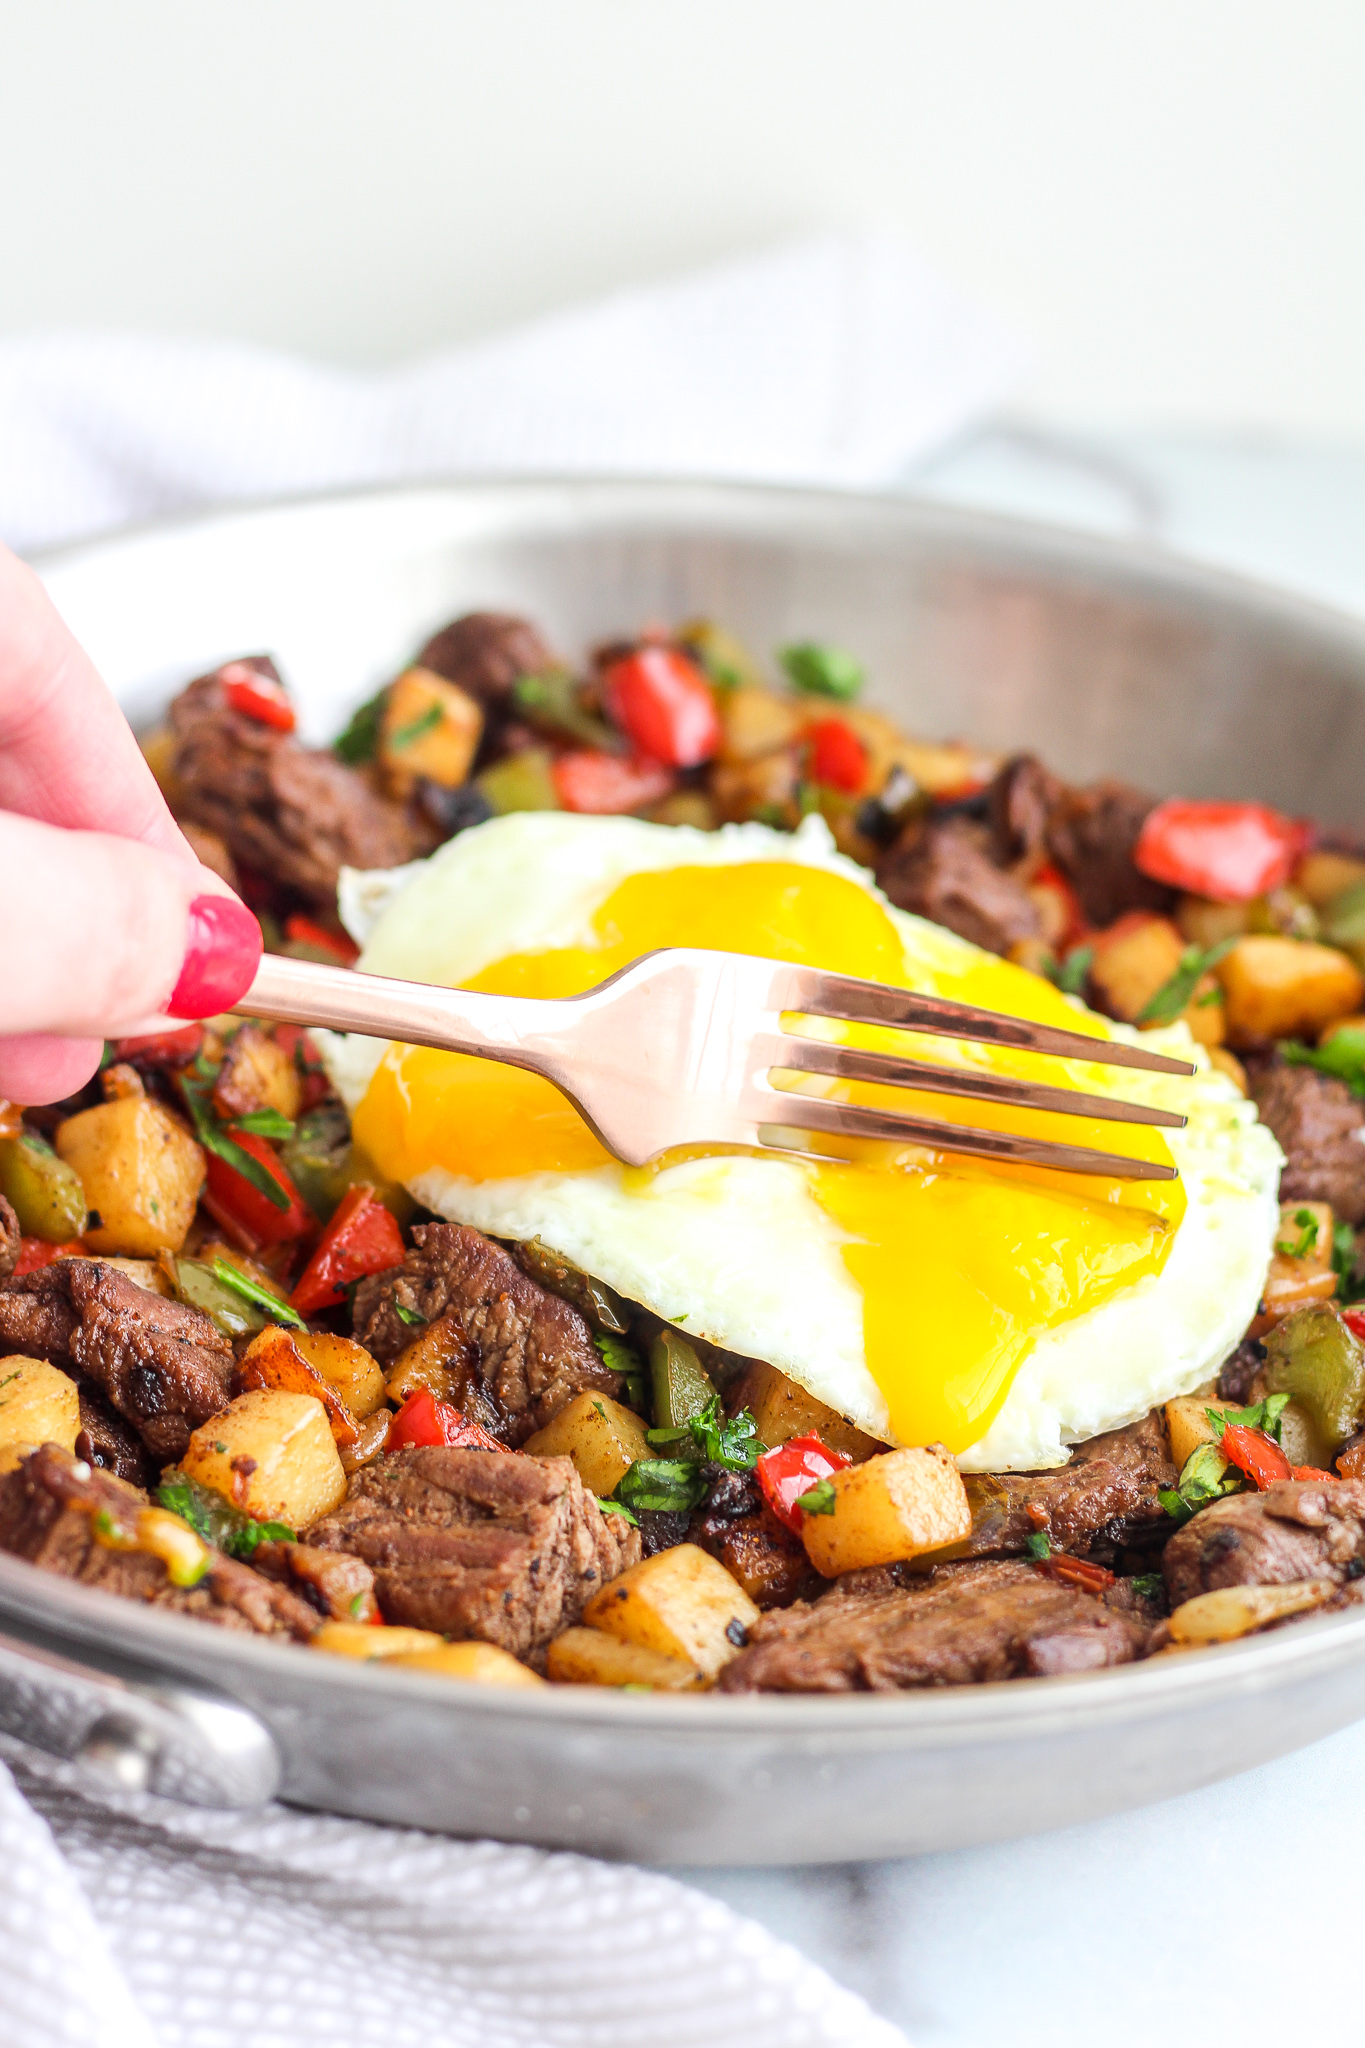 Fork cutting into a perfect runny egg yolk over Whole30 Steak Breakfast Hash